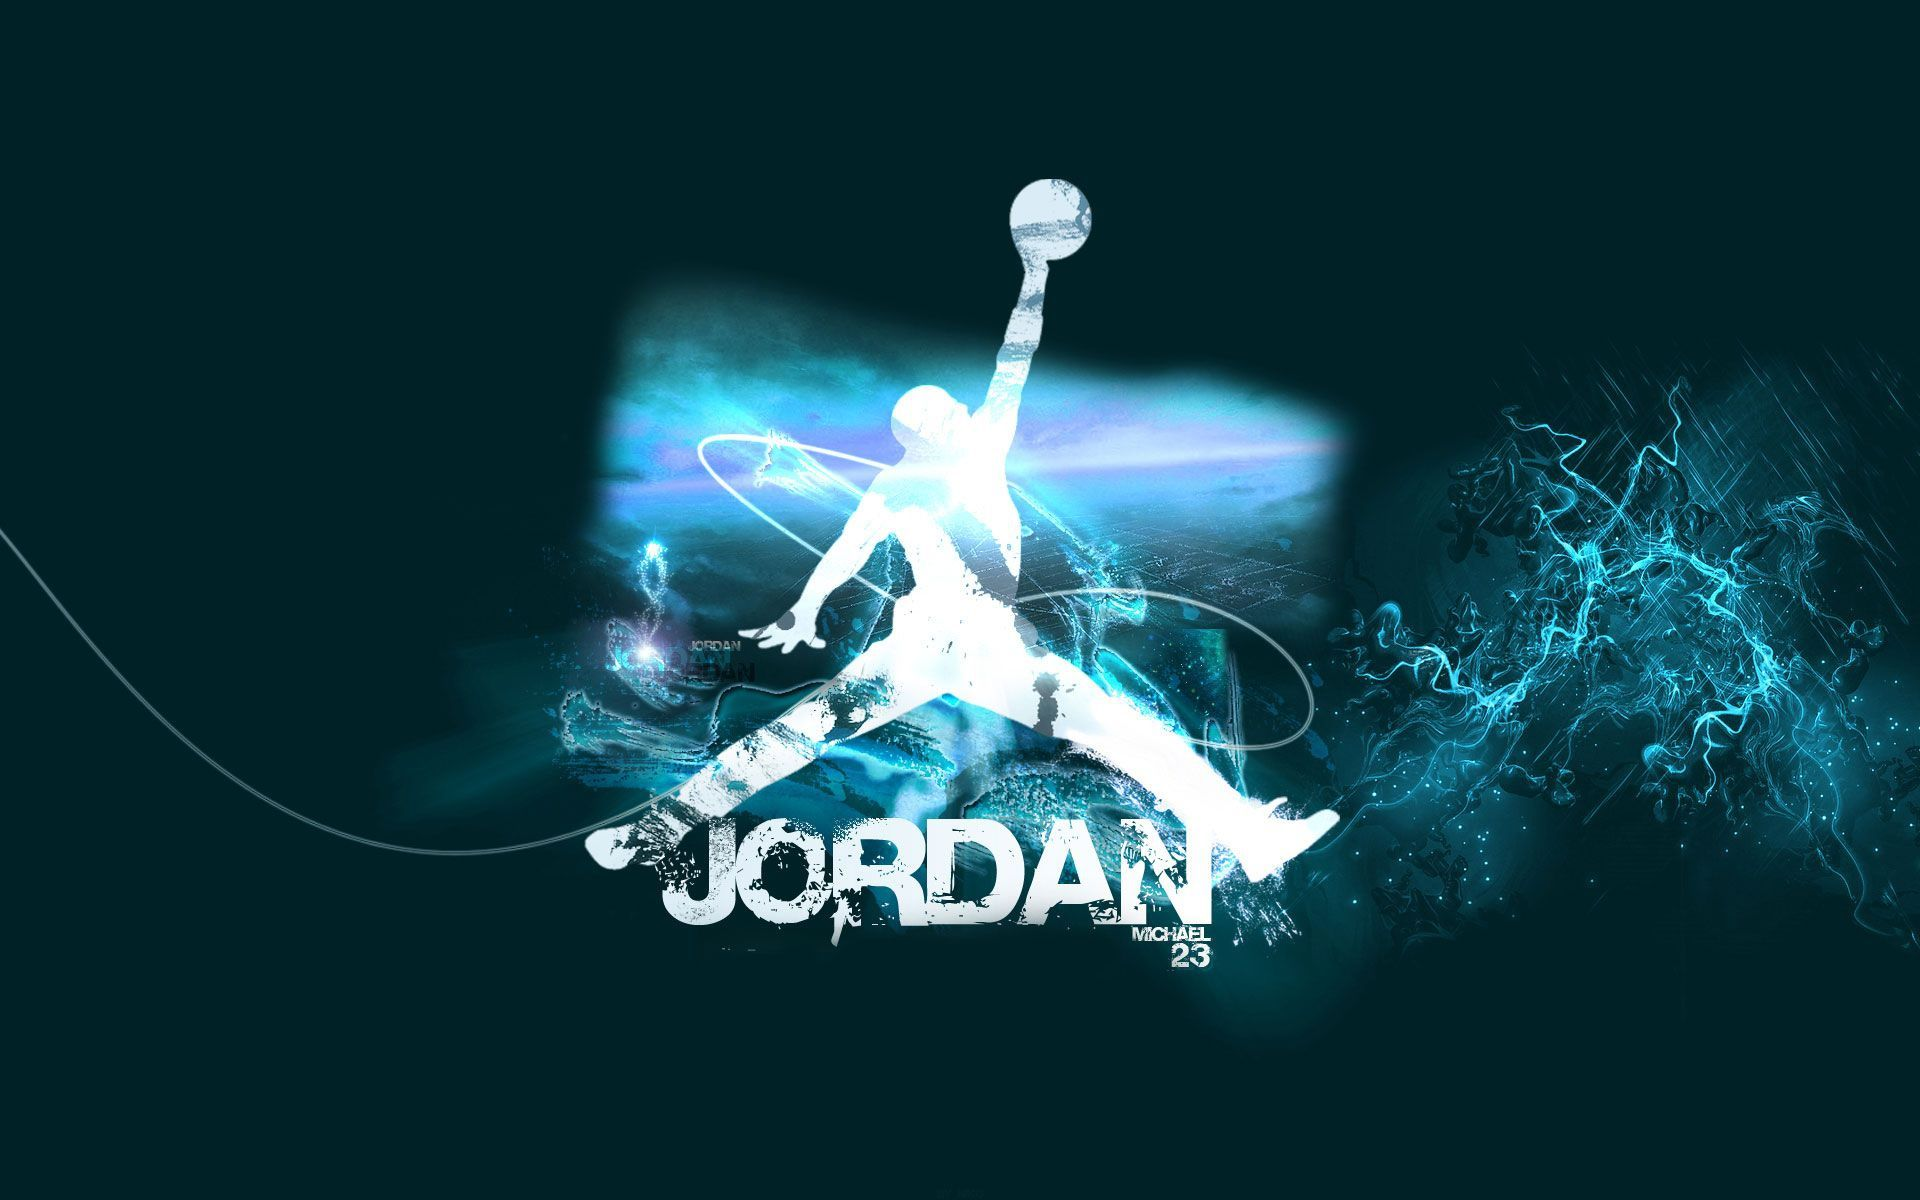 Jordan Logo Wallpaper HD Michael jordan, Jordan